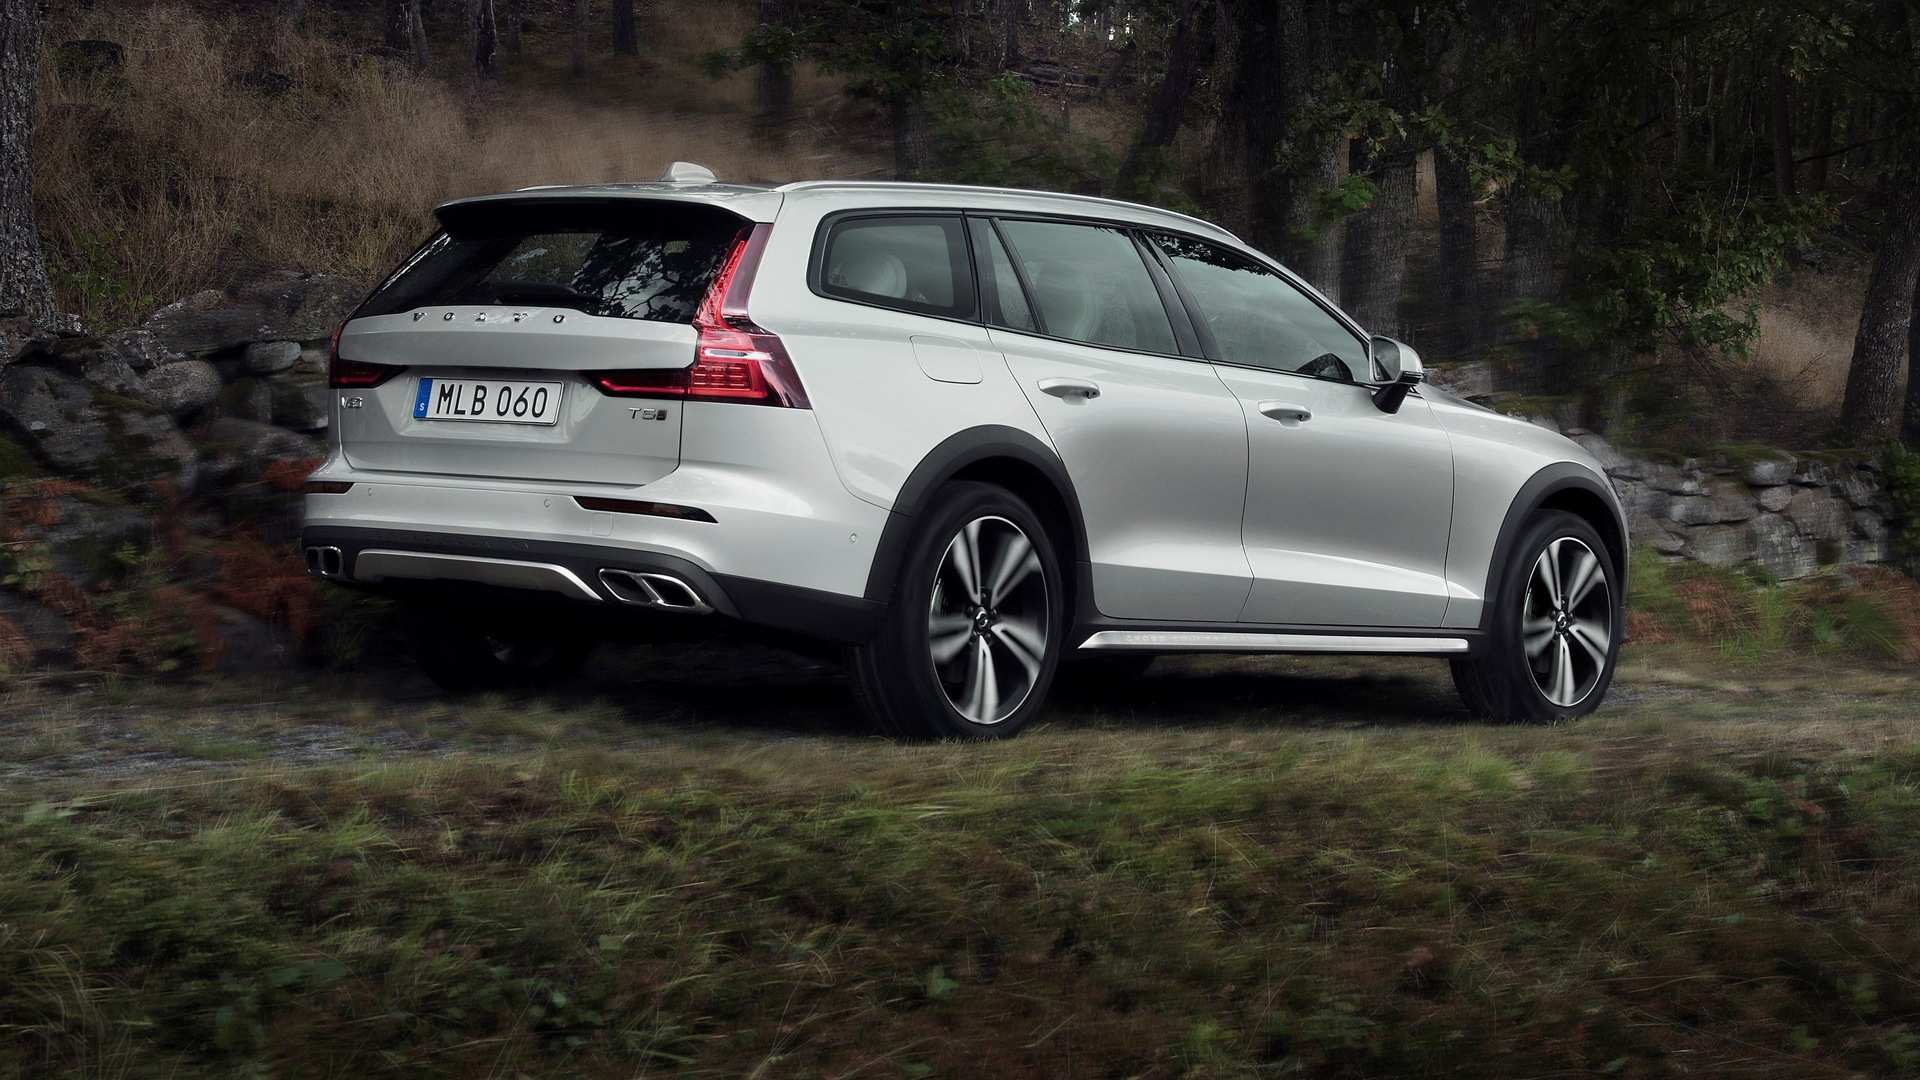 41 All New Volvo Lineup 2020 Spy Shoot for Volvo Lineup 2020